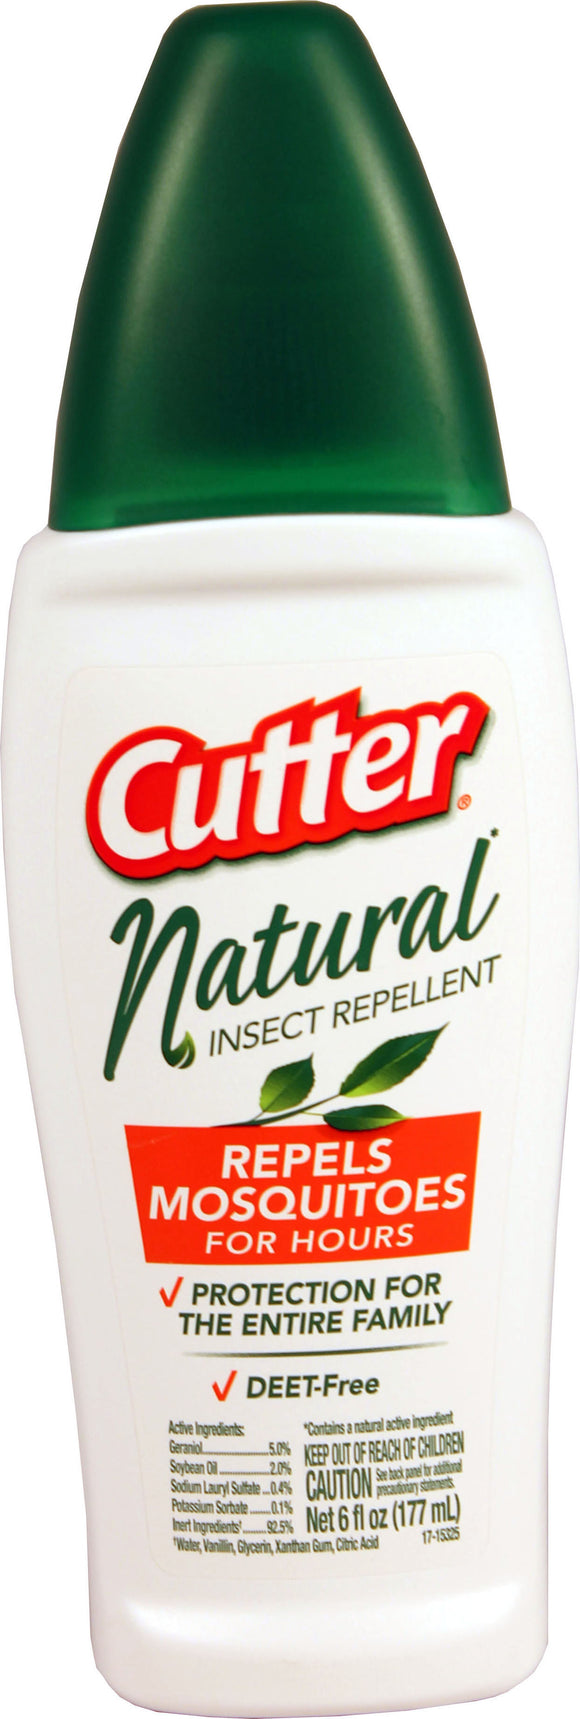 Spectracide - Cutter Natural Insect Repellent